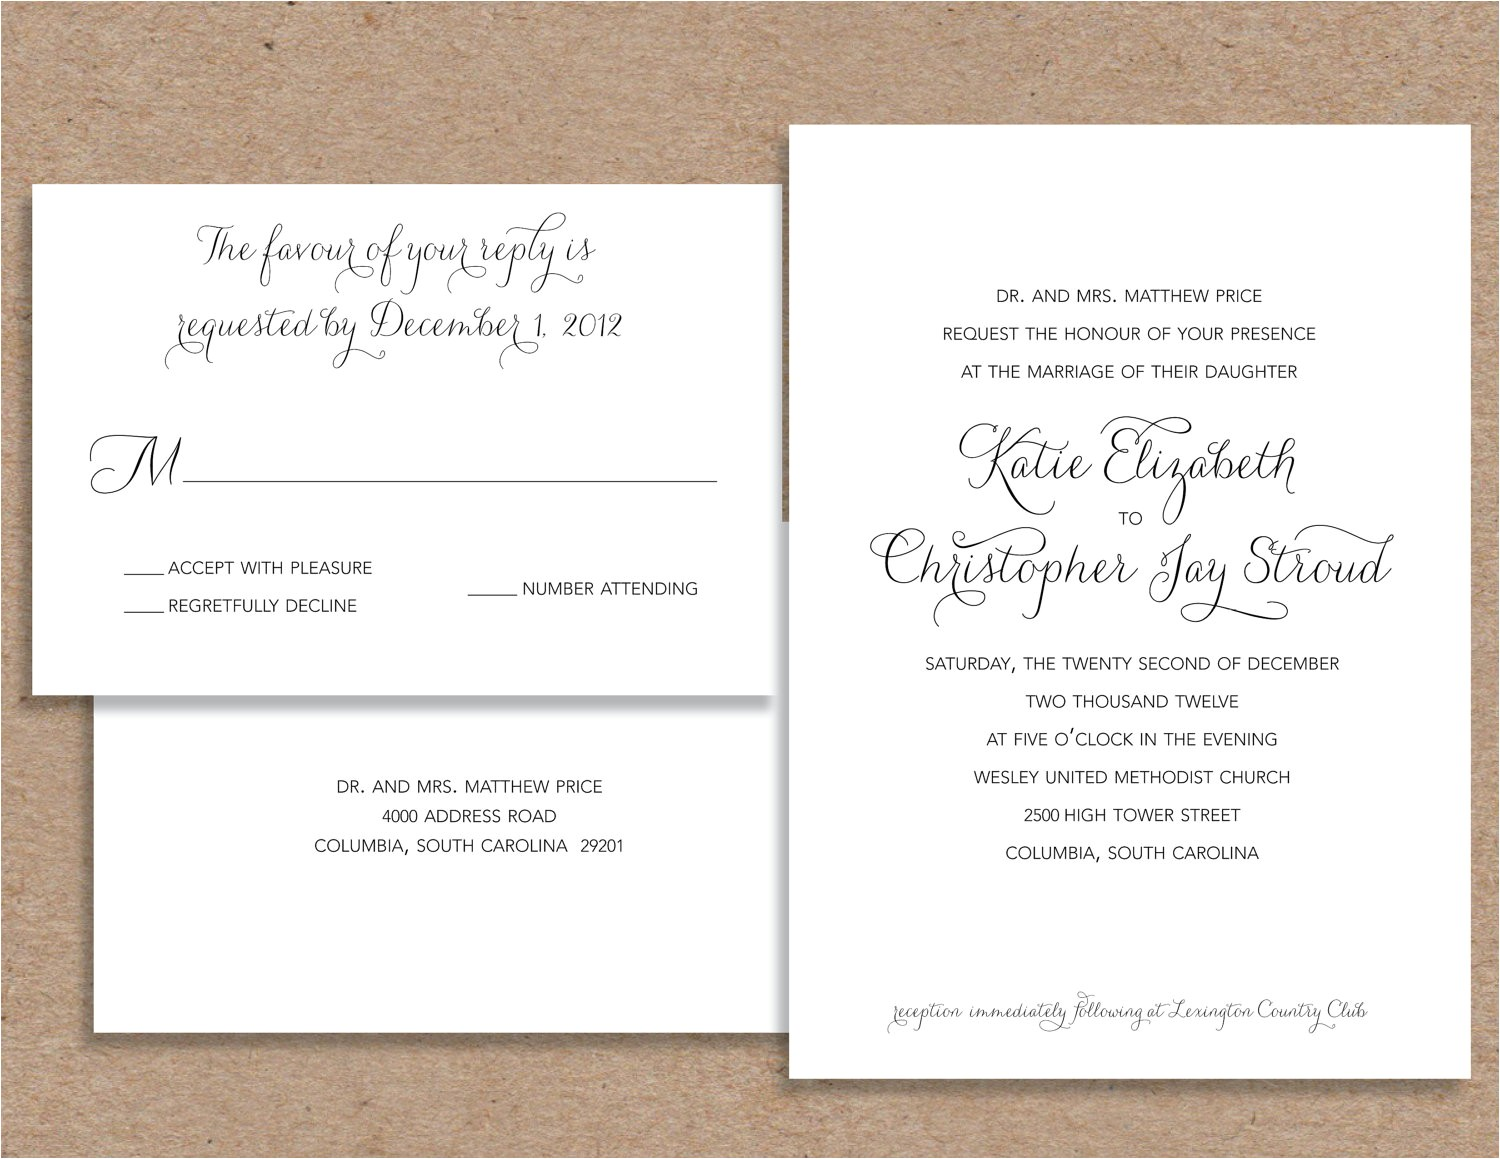 wedding invitation wording envelopes samples awesome templates addressing save the dates informal in conjunction with